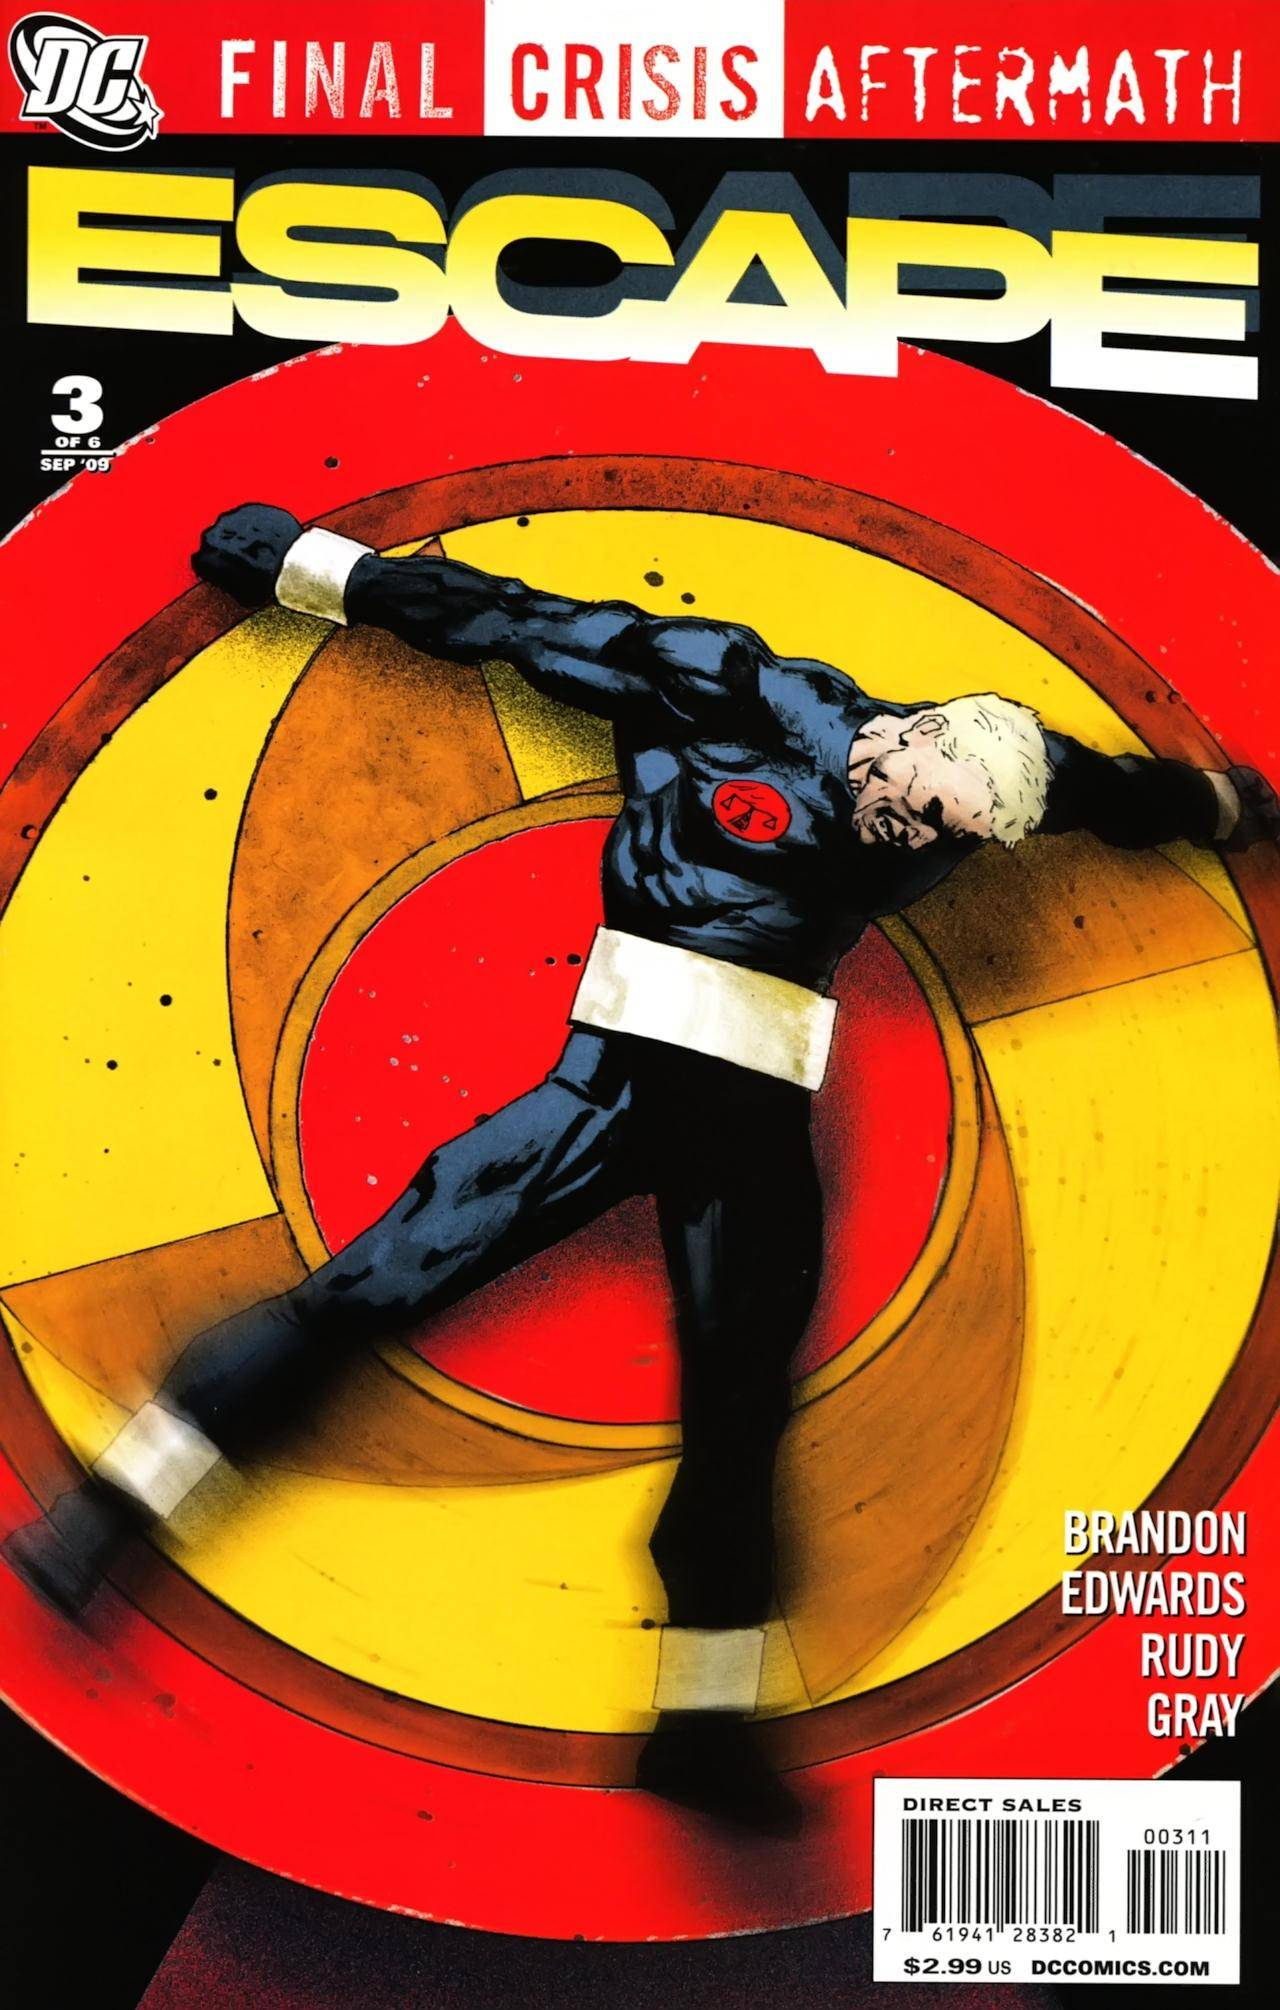 Final Crisis Aftermath - Escape 03 (of 06) (2009)